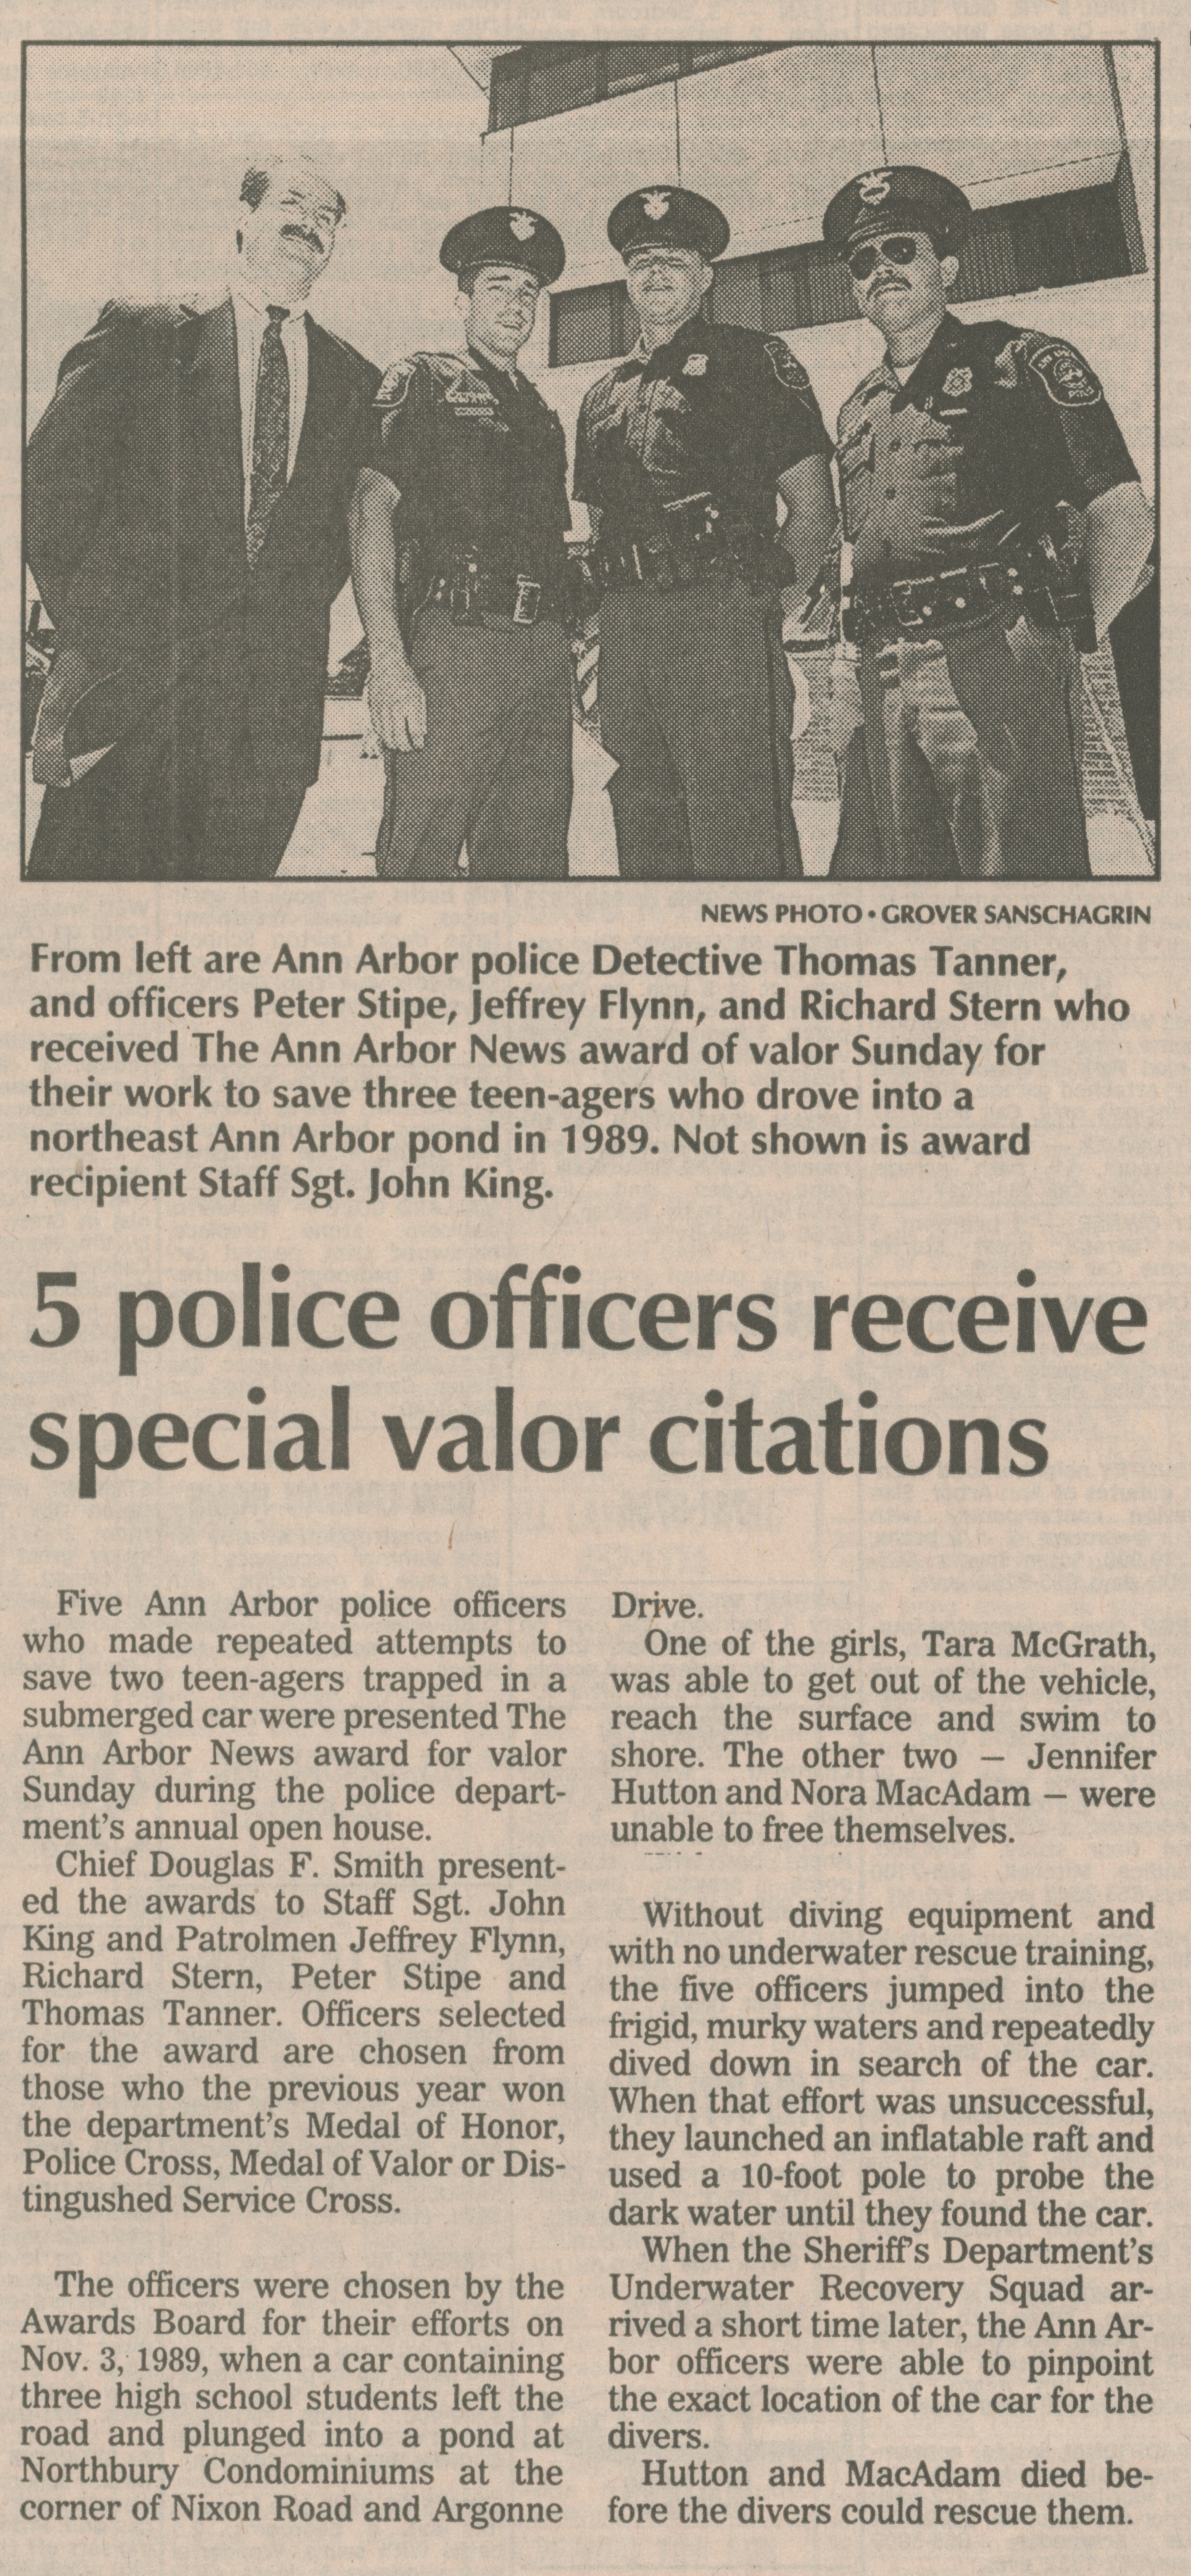 5 police officers receive special valor citations image